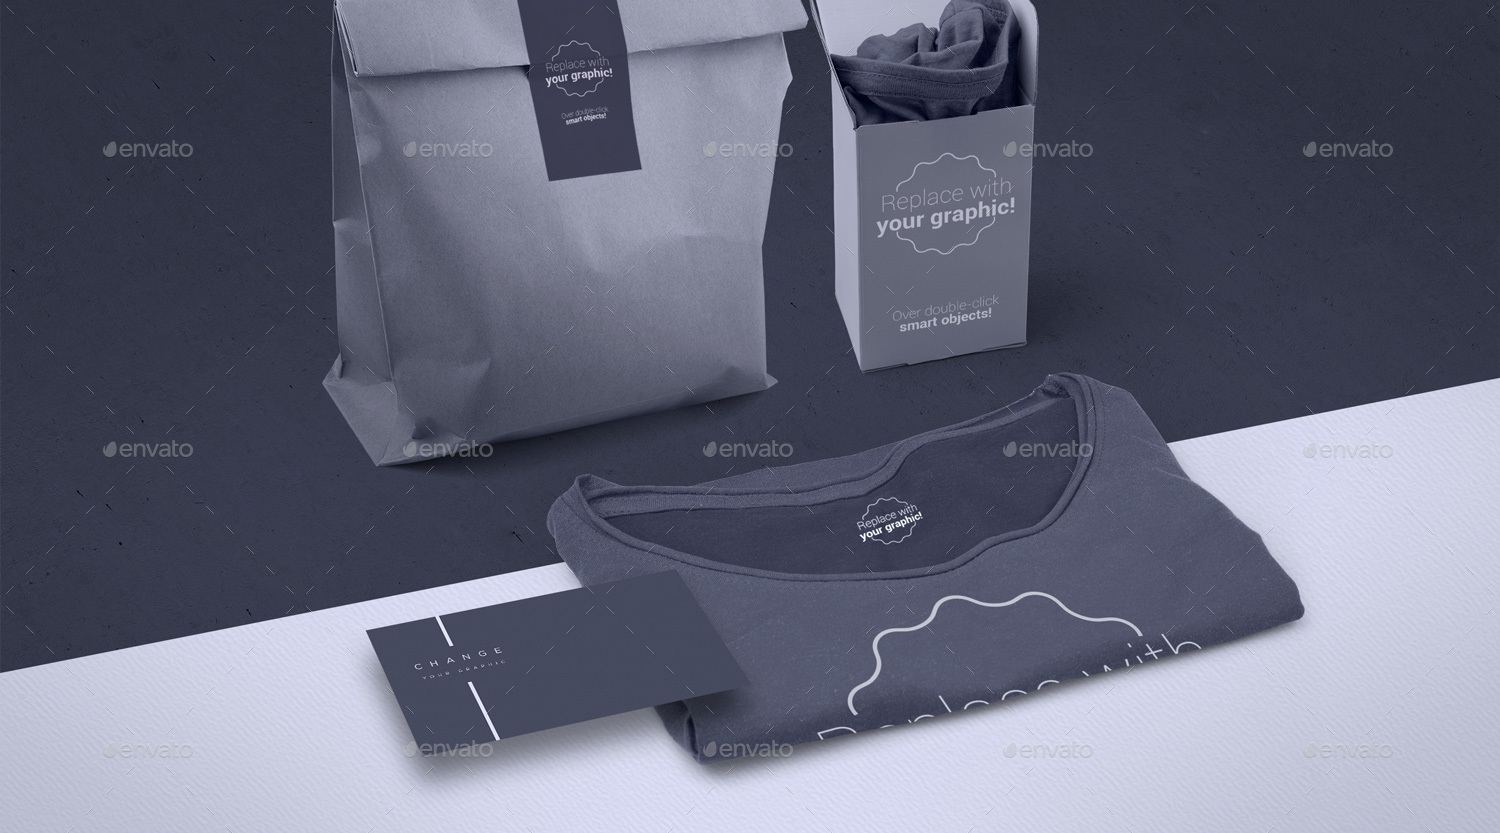 Shirt design generator -  T Shirt Mockup With Bussines Card And Two Packages Templates For Header Hero Image Jpg